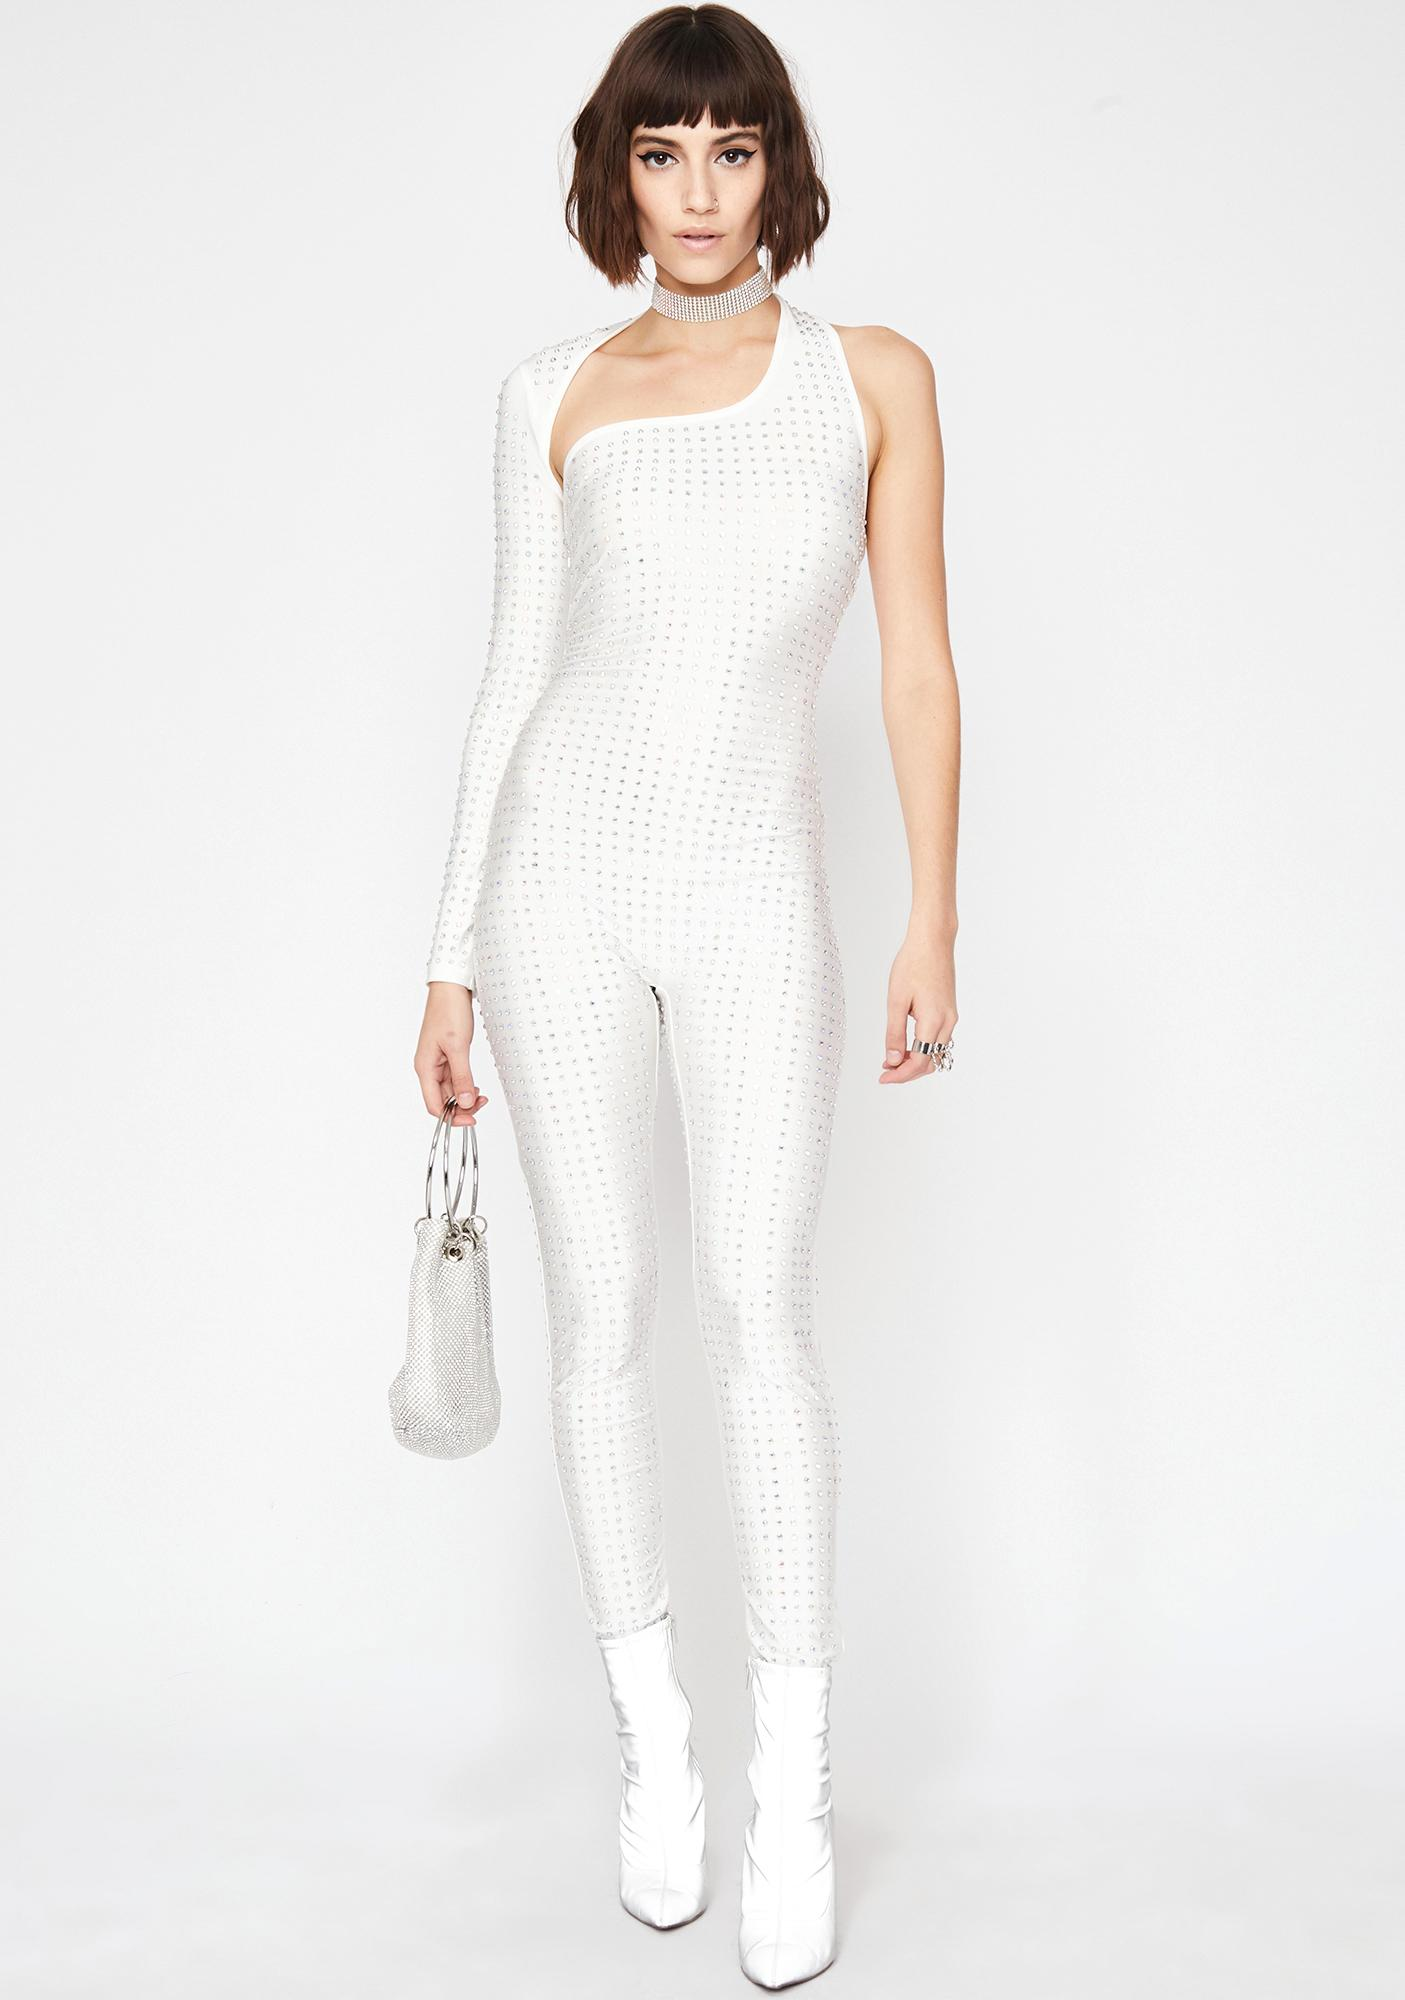 Flossy Facts Rhinestone Catsuit